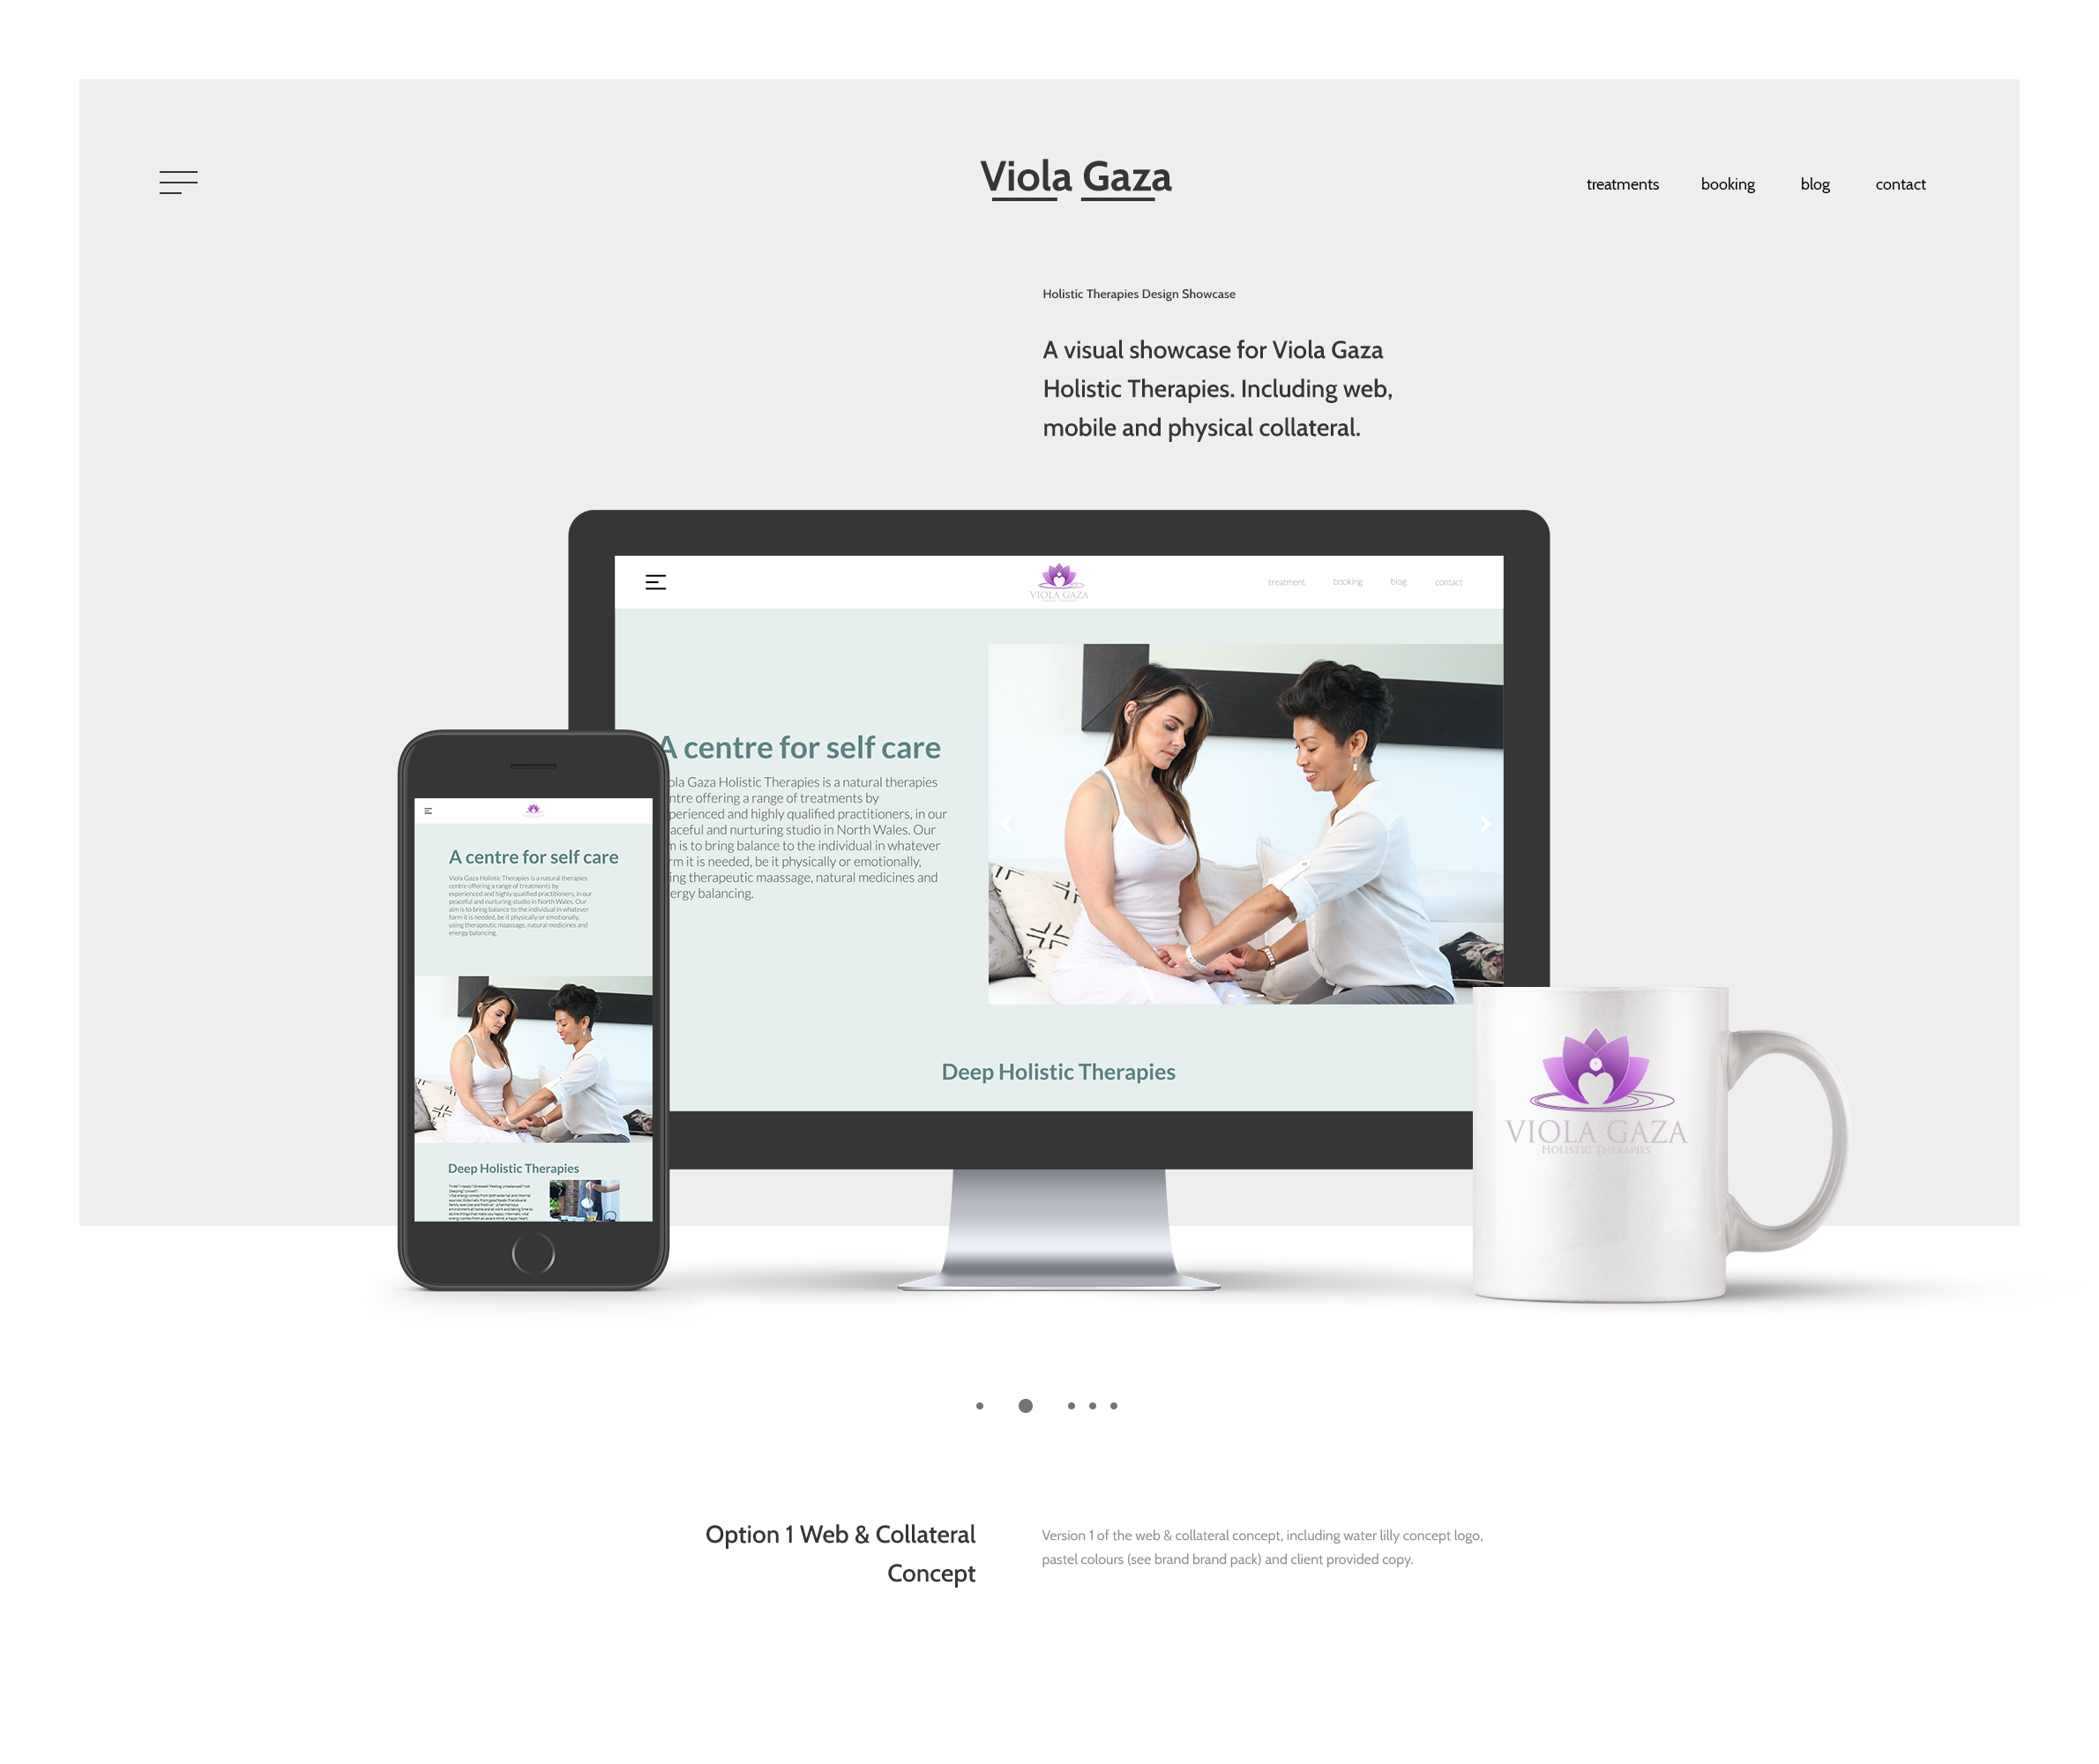 Viola Gaza Option 1 website and collateral examples for client approvals